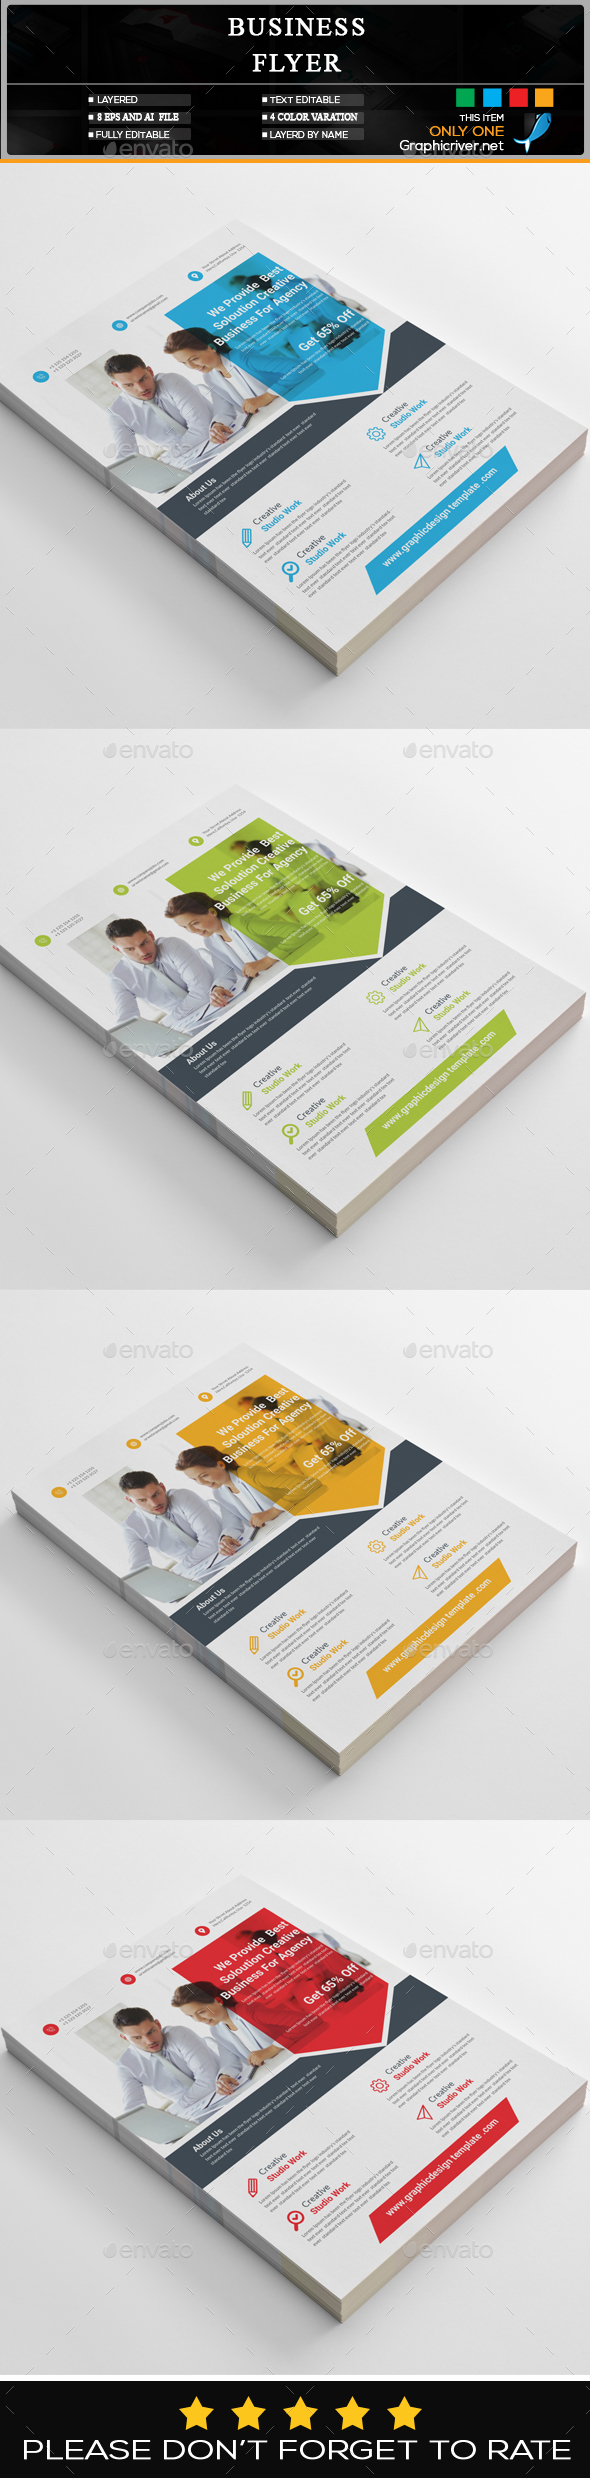 GraphicRiver Business Flyer 20435450